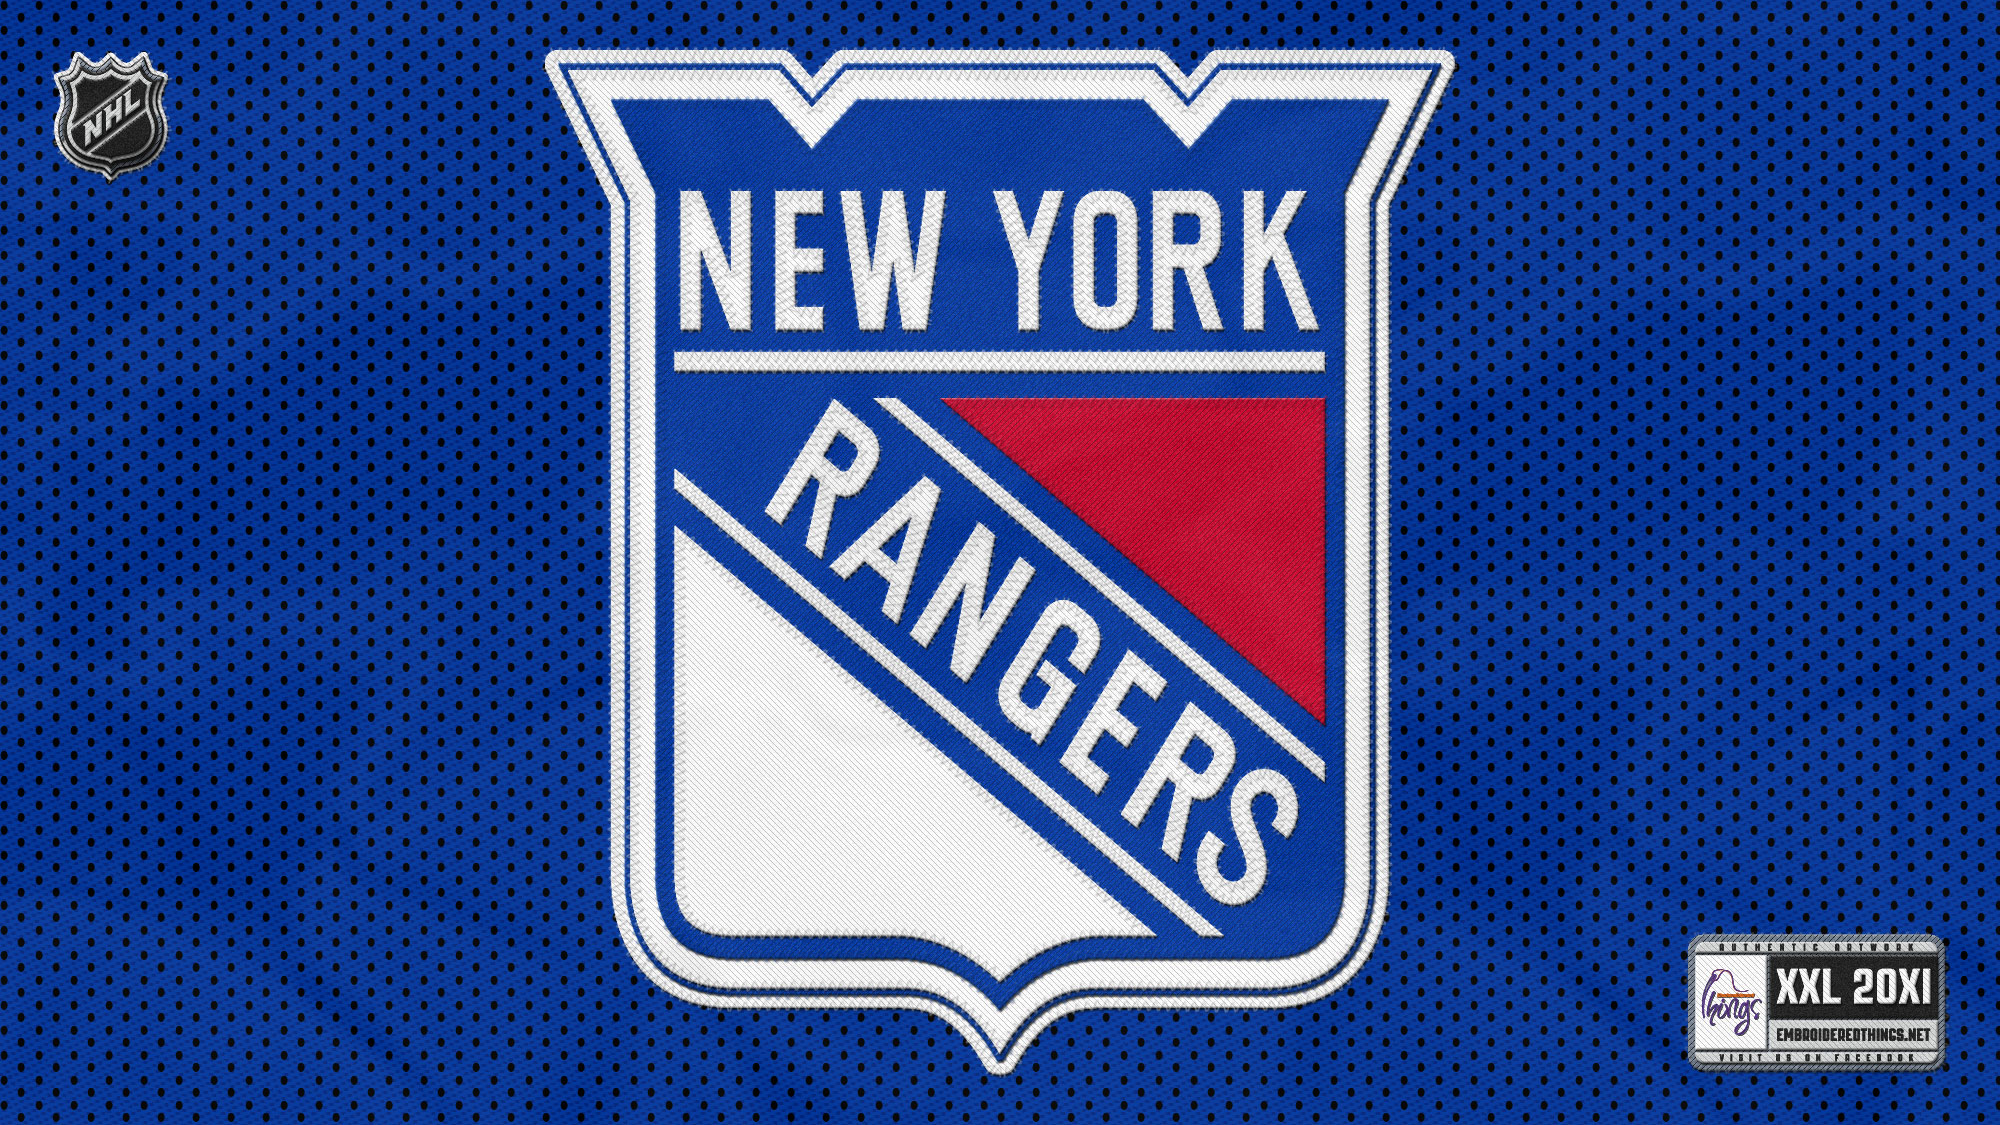 New York Rangers desktop wallpaper New York Rangers wallpapers 2000x1125